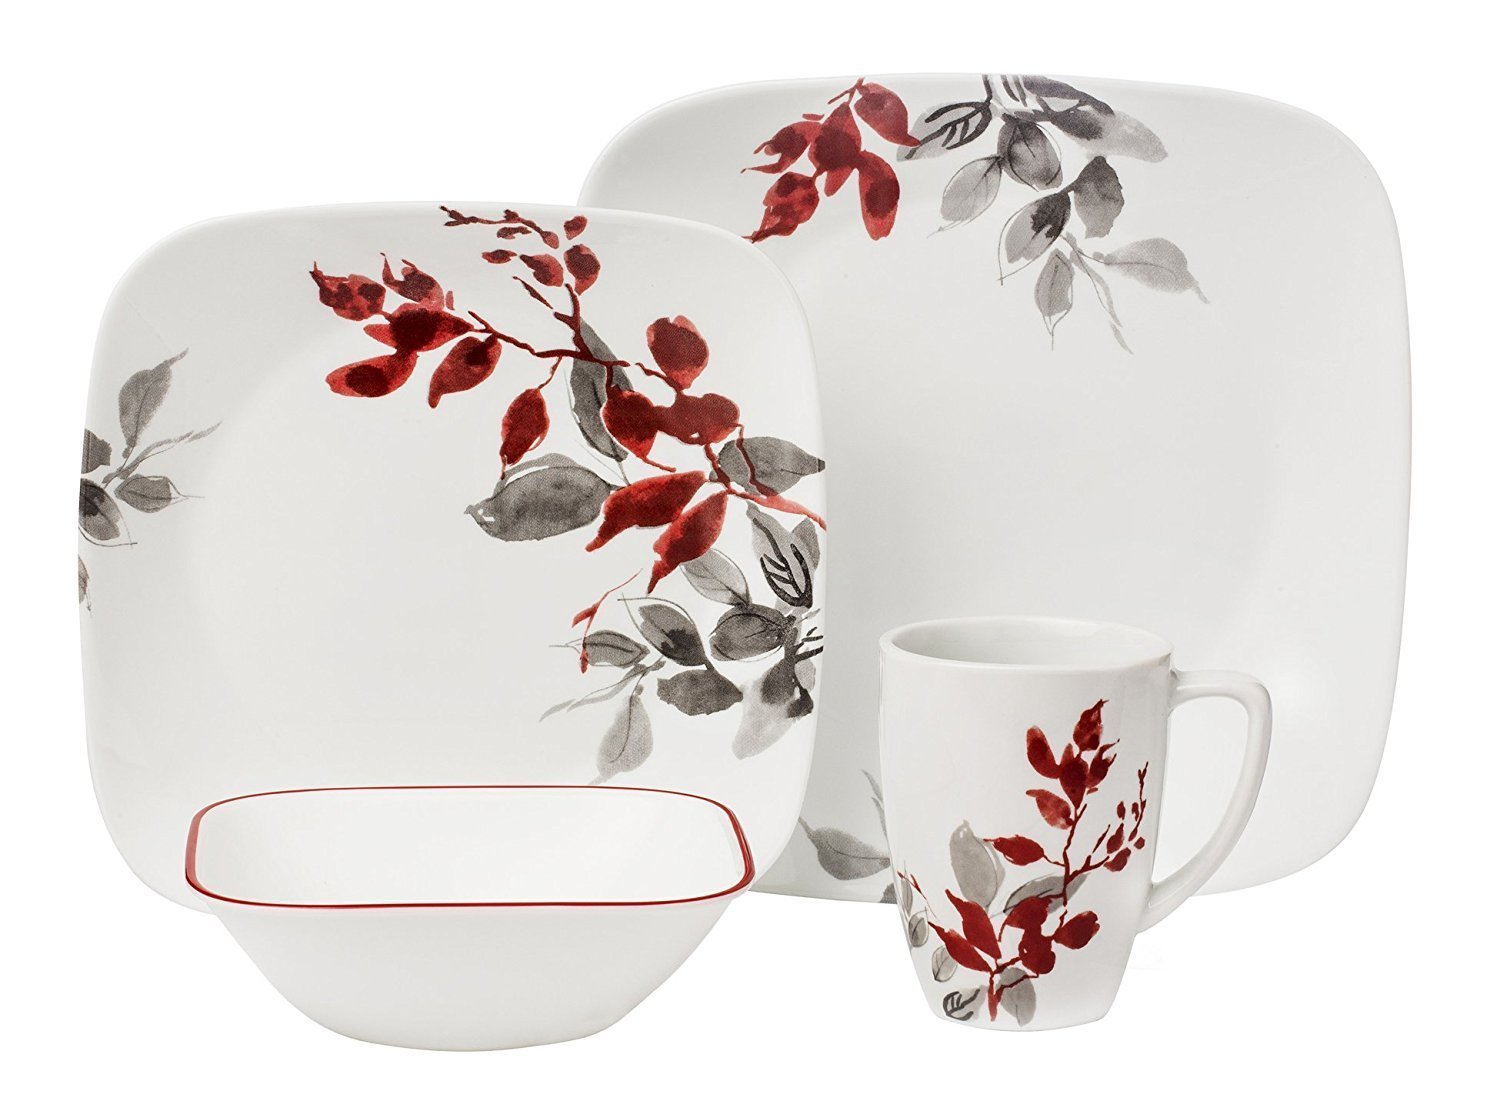 Corelle 16-Piece Vitrelle Glass Kyoto Leaves Chip and Break Resistant Dinner Set, Service for 4, Red/ Grey World Kitchen FBA_3972